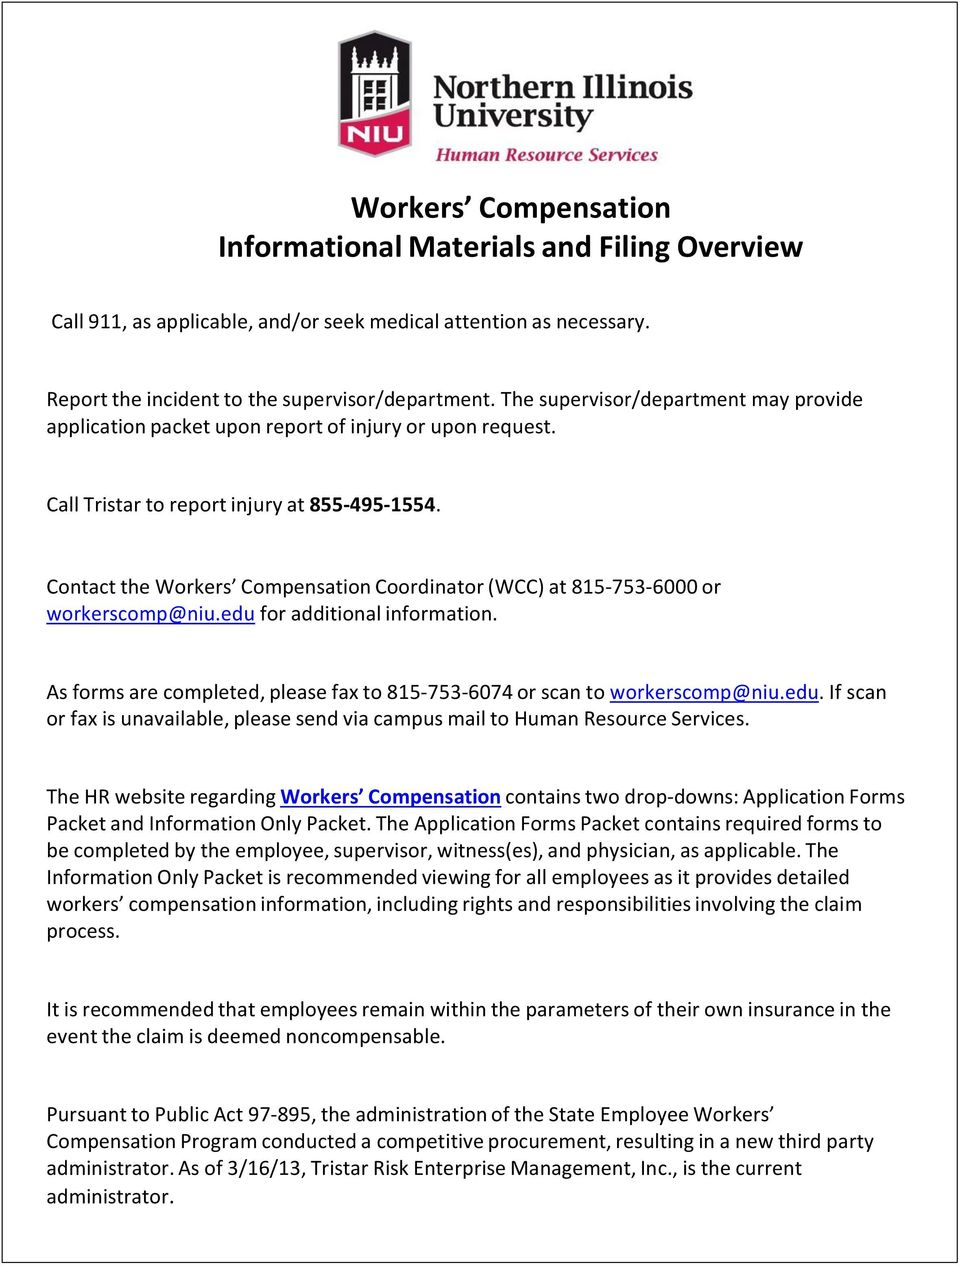 Contact the Workers Compensation Coordinator (WCC) at 815-753-6000 or workerscomp@niu.edu for additional information. As forms are completed, please fax to 815-753-6074 or scan to workerscomp@niu.edu. If scan or fax is unavailable, please send via campus mail to Human Resource Services.